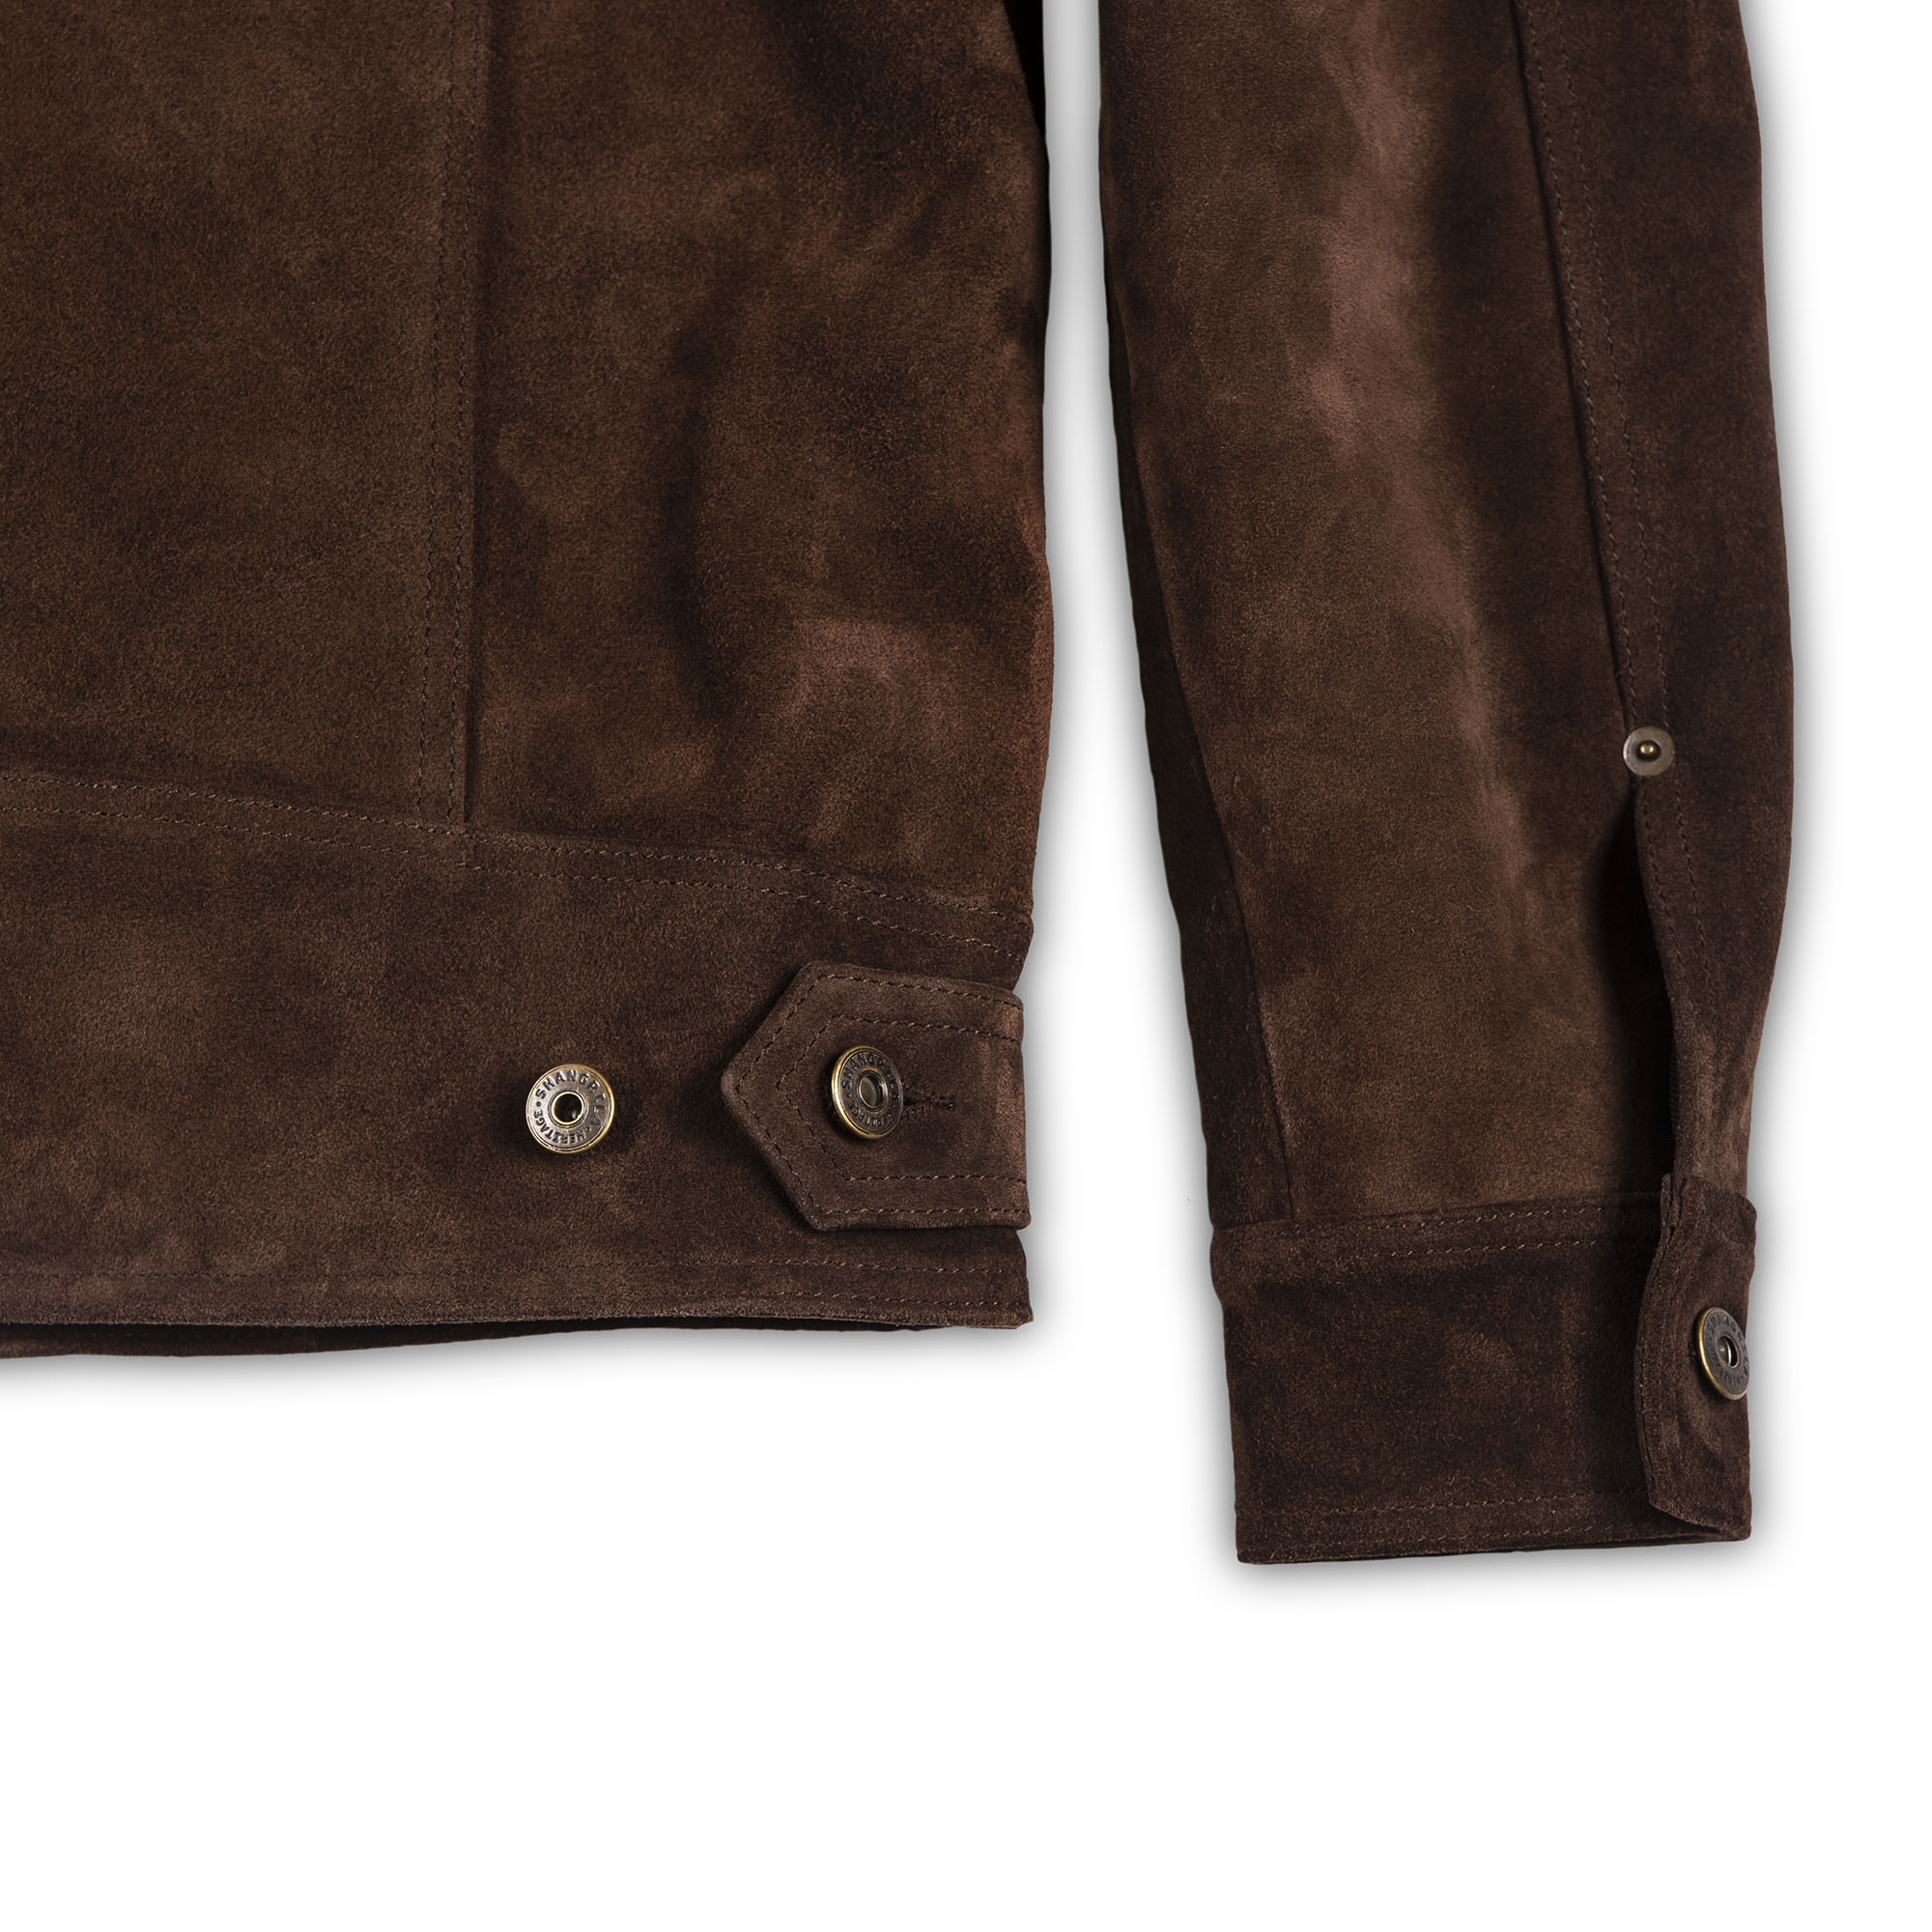 shangri-la-heritage-terracotta-brown-calfskin-suede-jacket-still-life-back-bottom